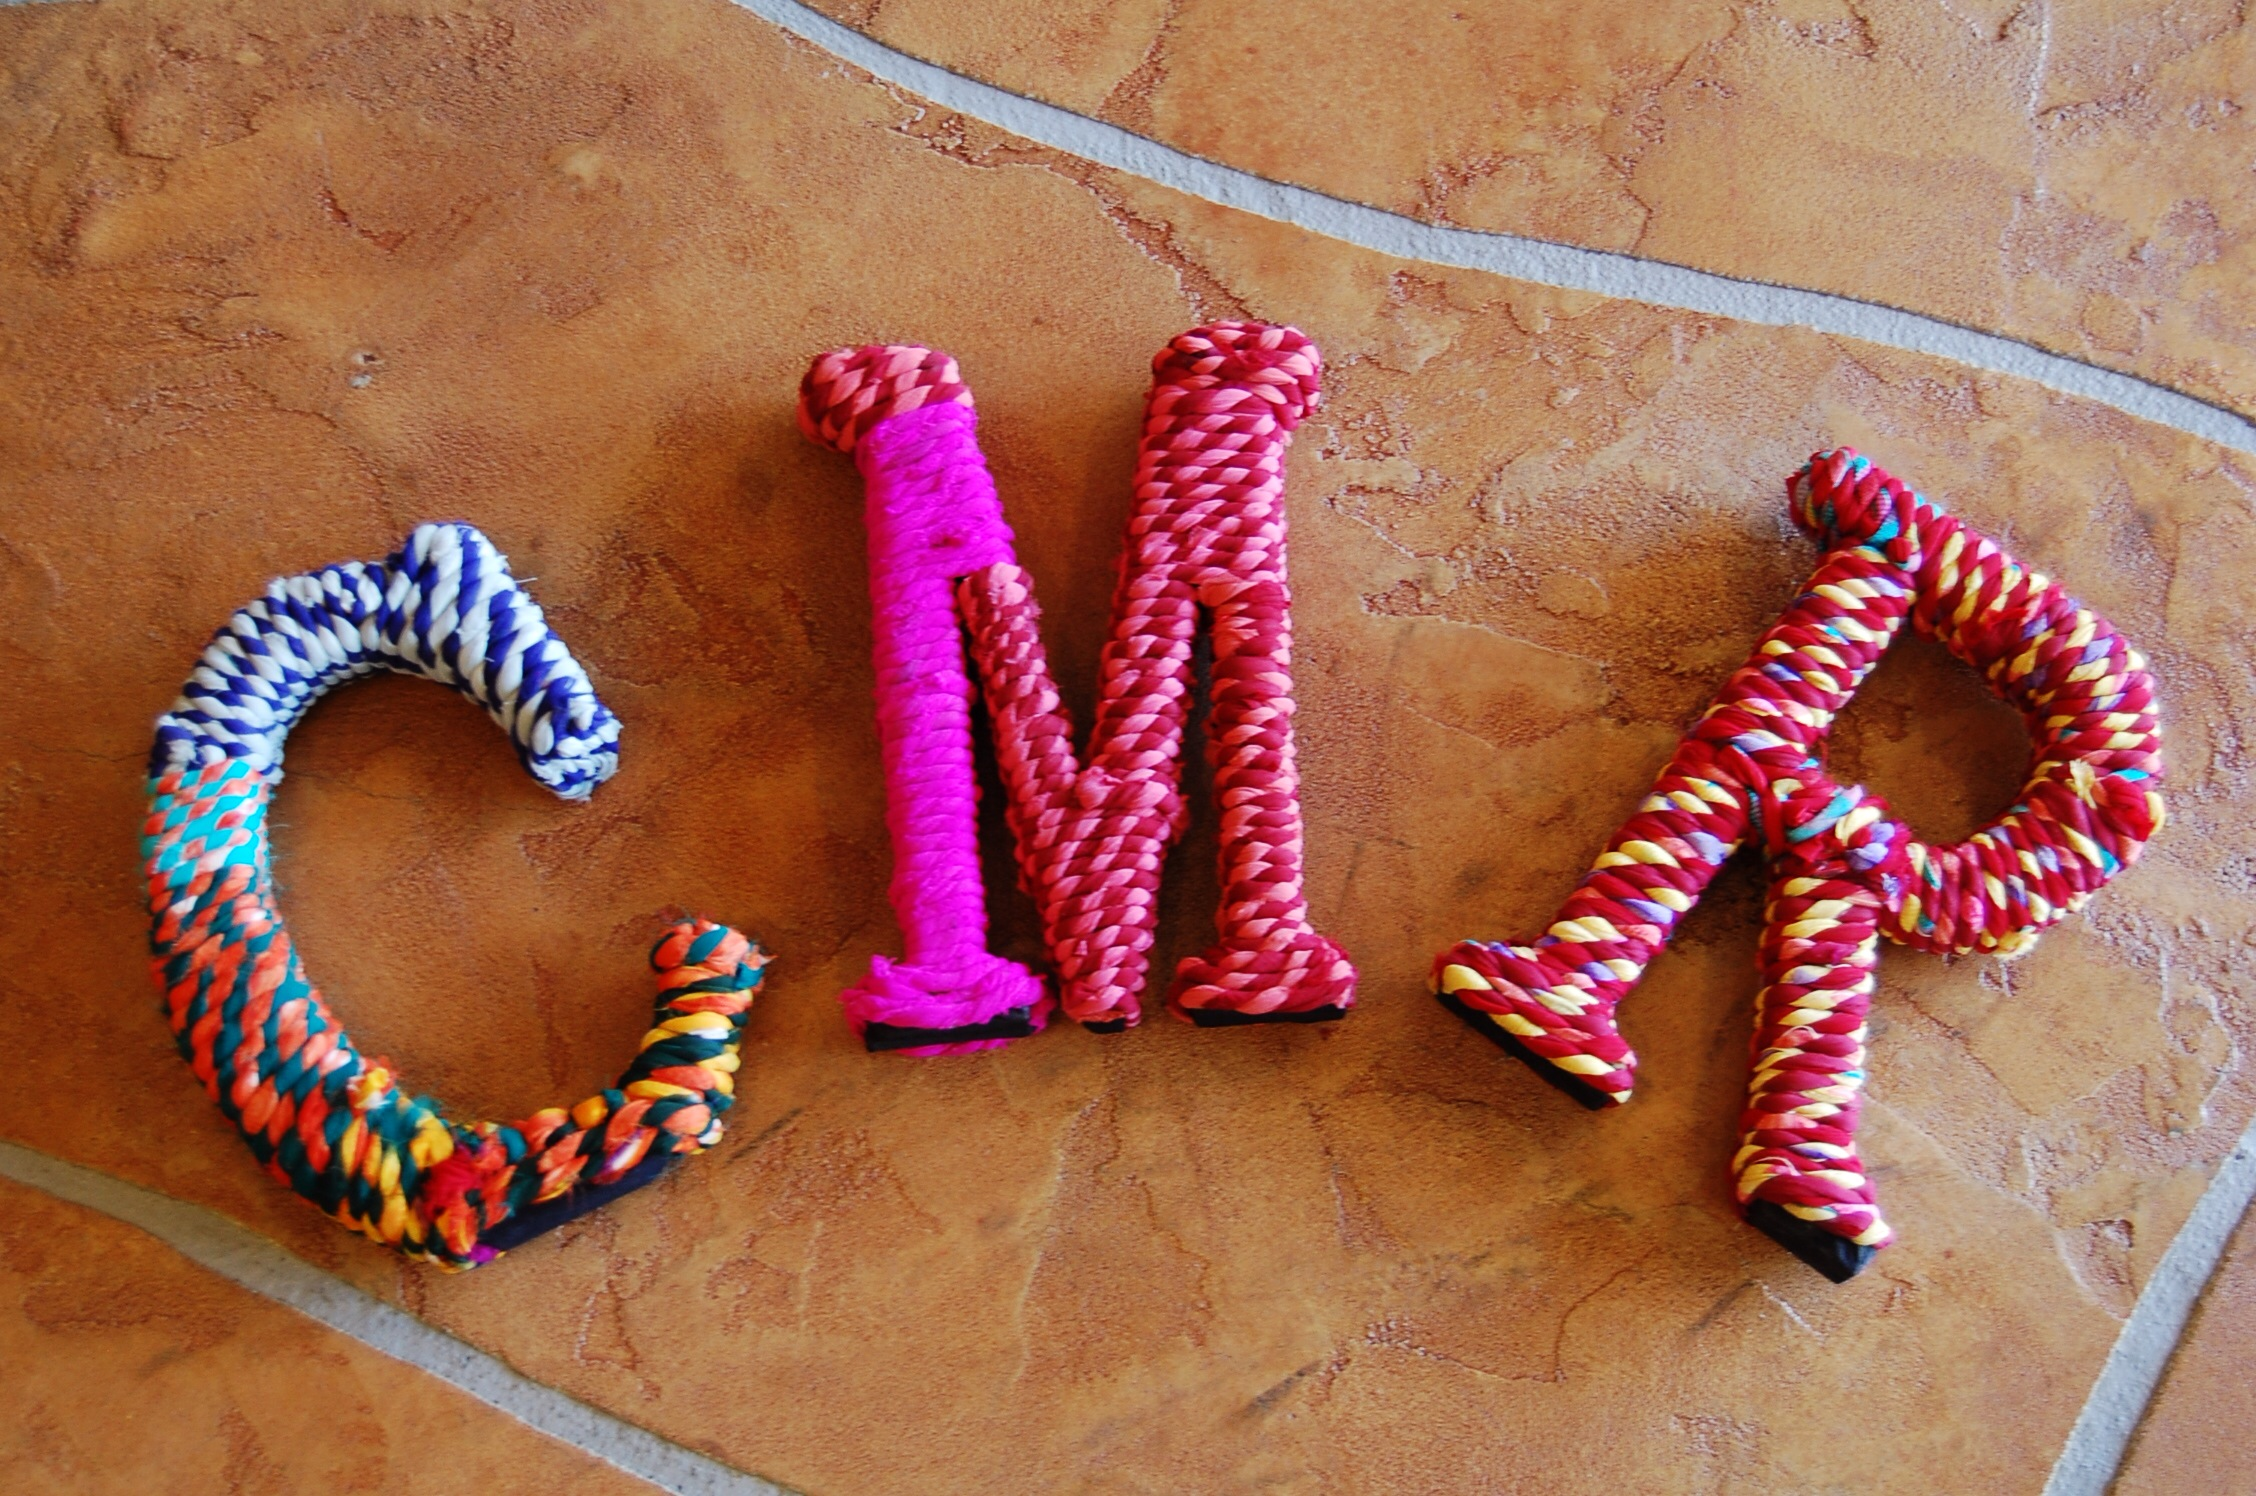 Spell It Out 5 Places To Purchase Letter Decor D Magazine